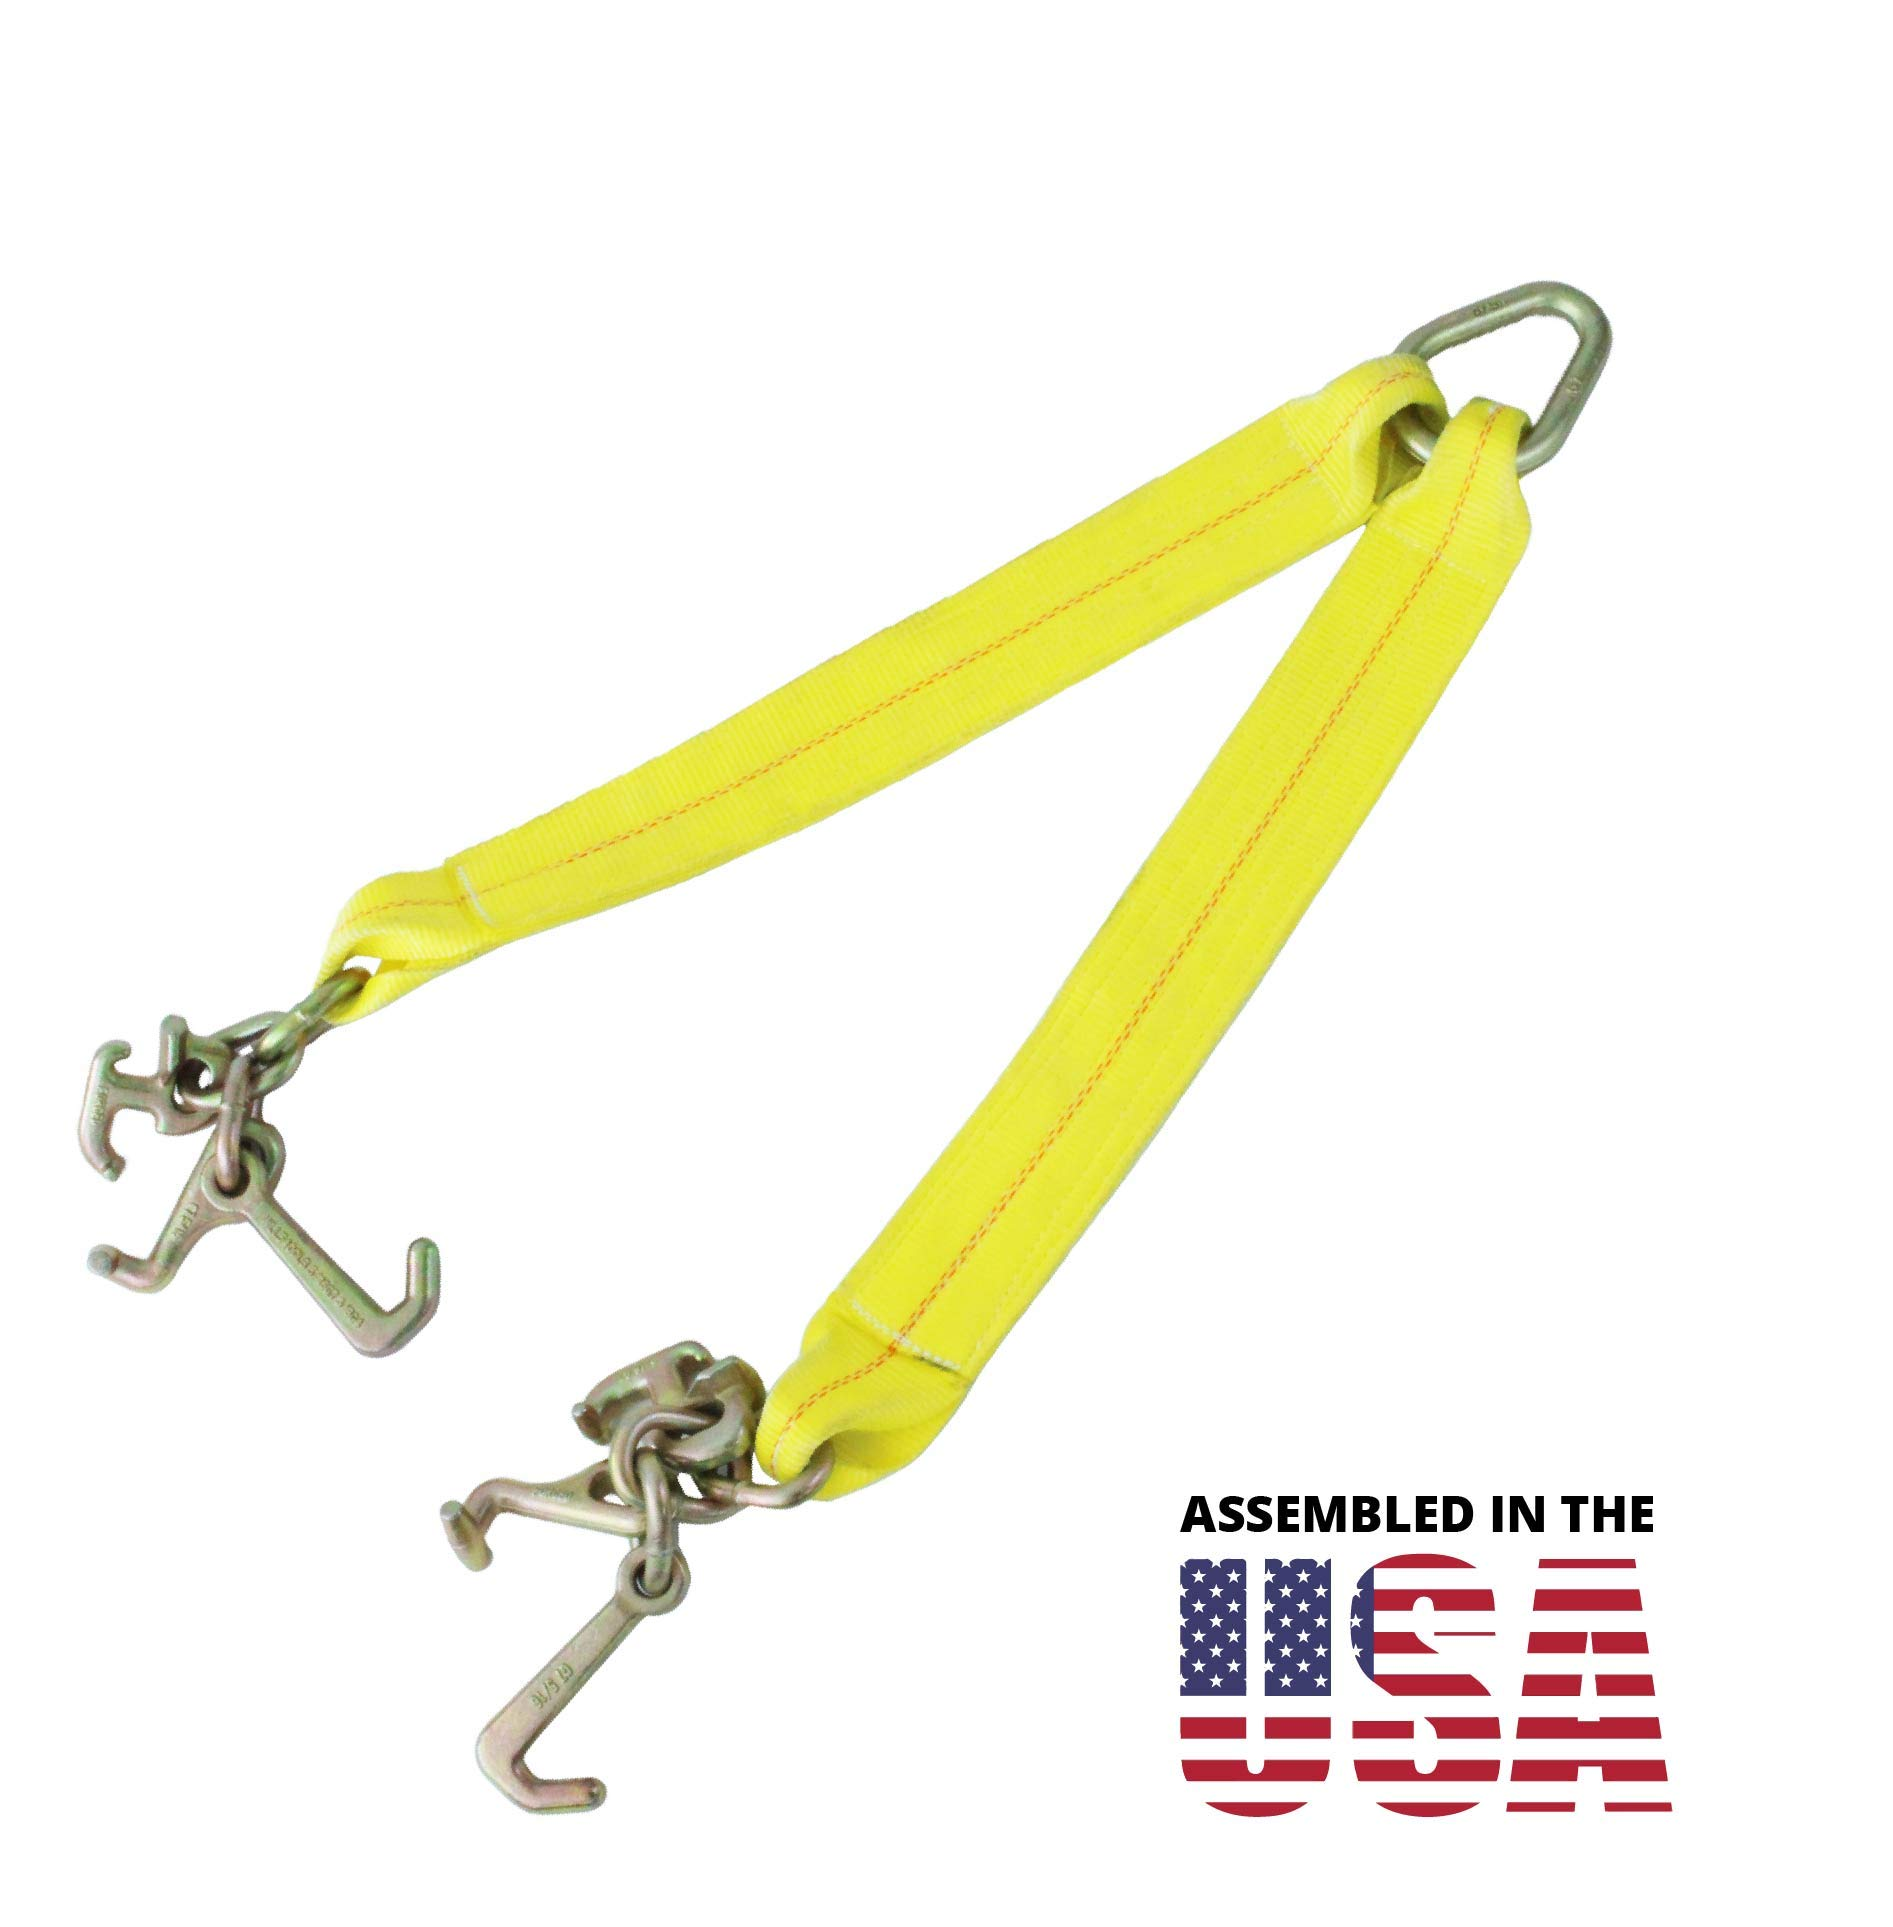 Boxer Tools Tow Strap V Bridle with Cluster RTJ Hooks, Assembled in The USA